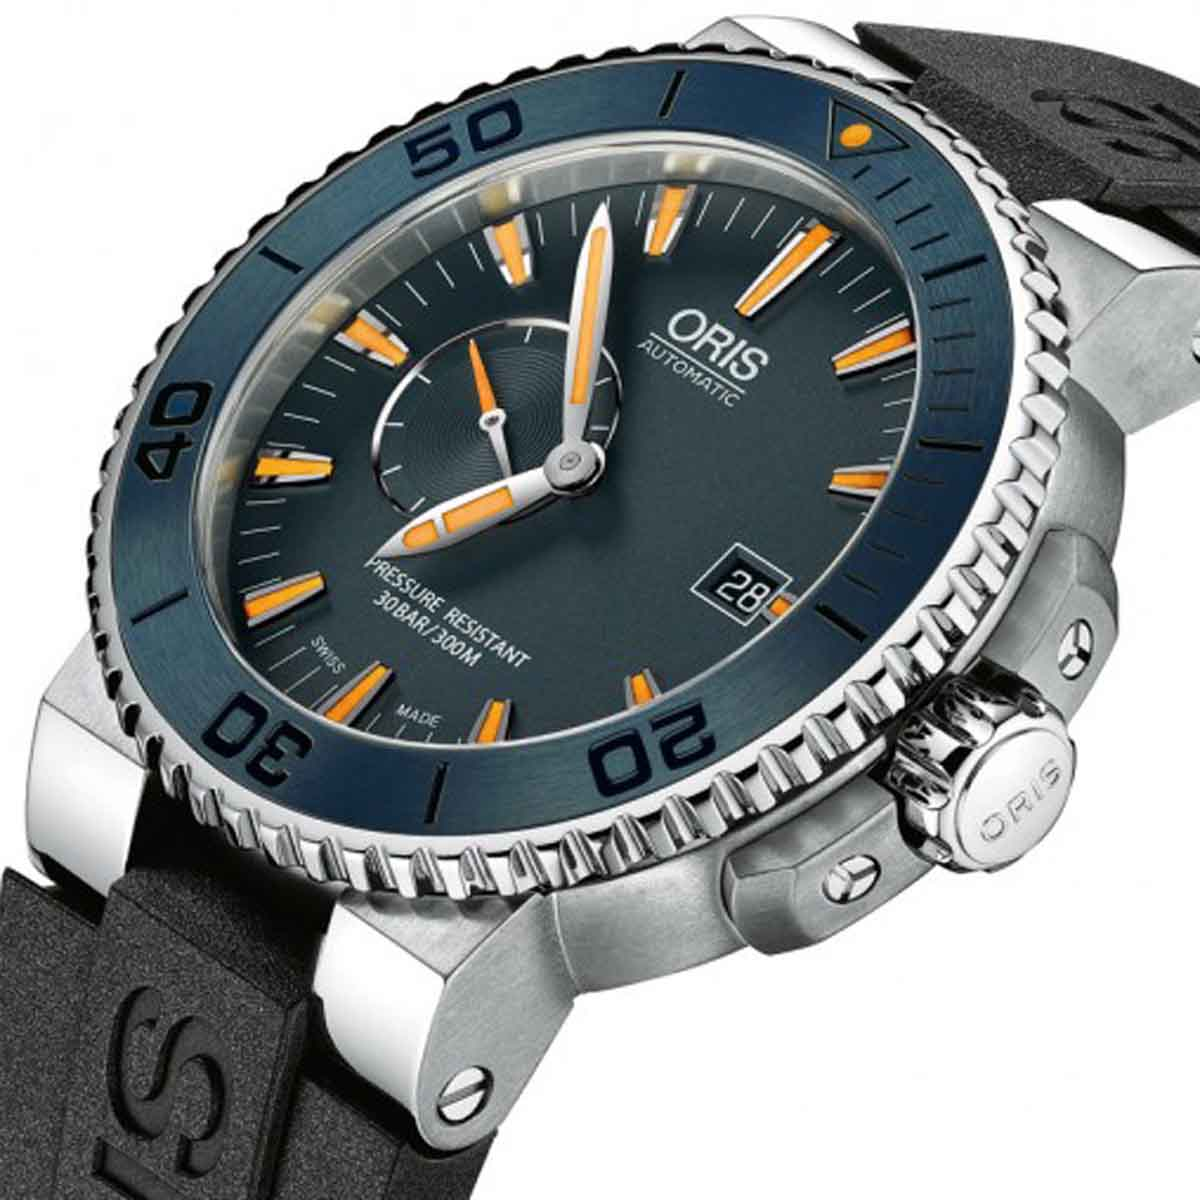 Oris Watch 2018